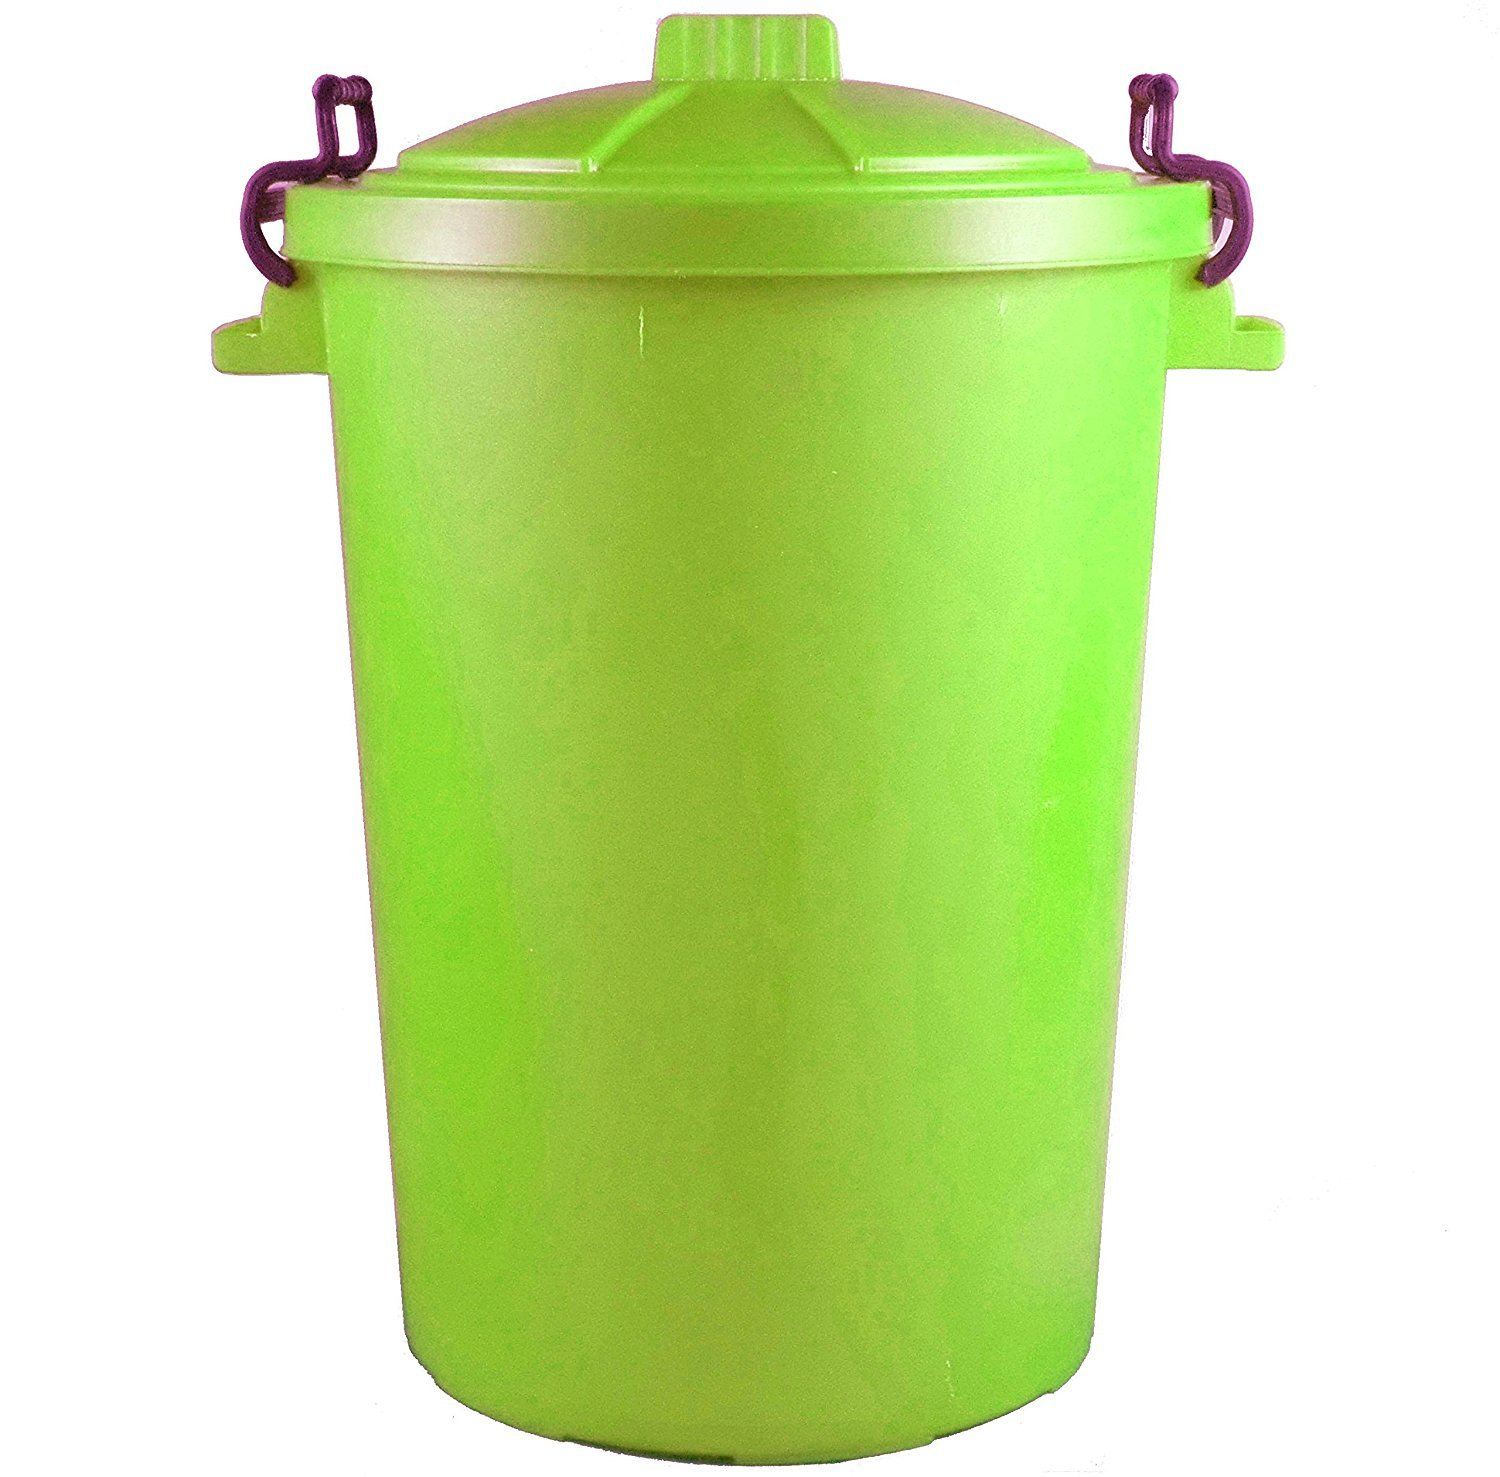 85 Litre 85L Extra Large Colour Plastic Dustbin Garden Bin Clip on Locking Lid Heavy Duty for Rubbish Recycle Waste Animal Feed Storage Unit Sky Blue